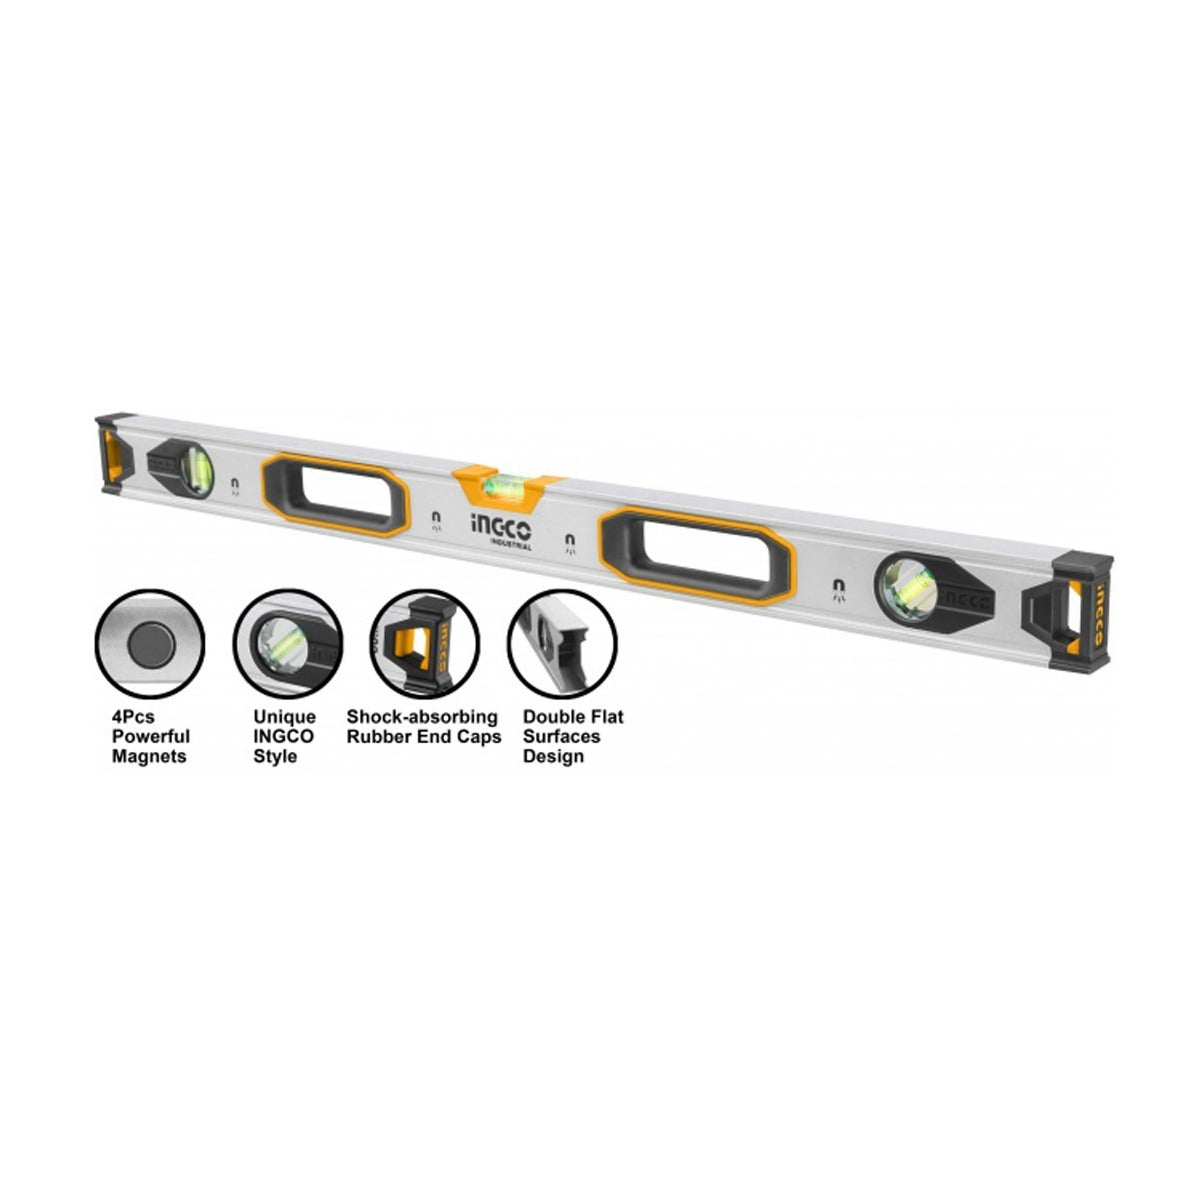 Ingco Magnetic Spirit Level 100Cm